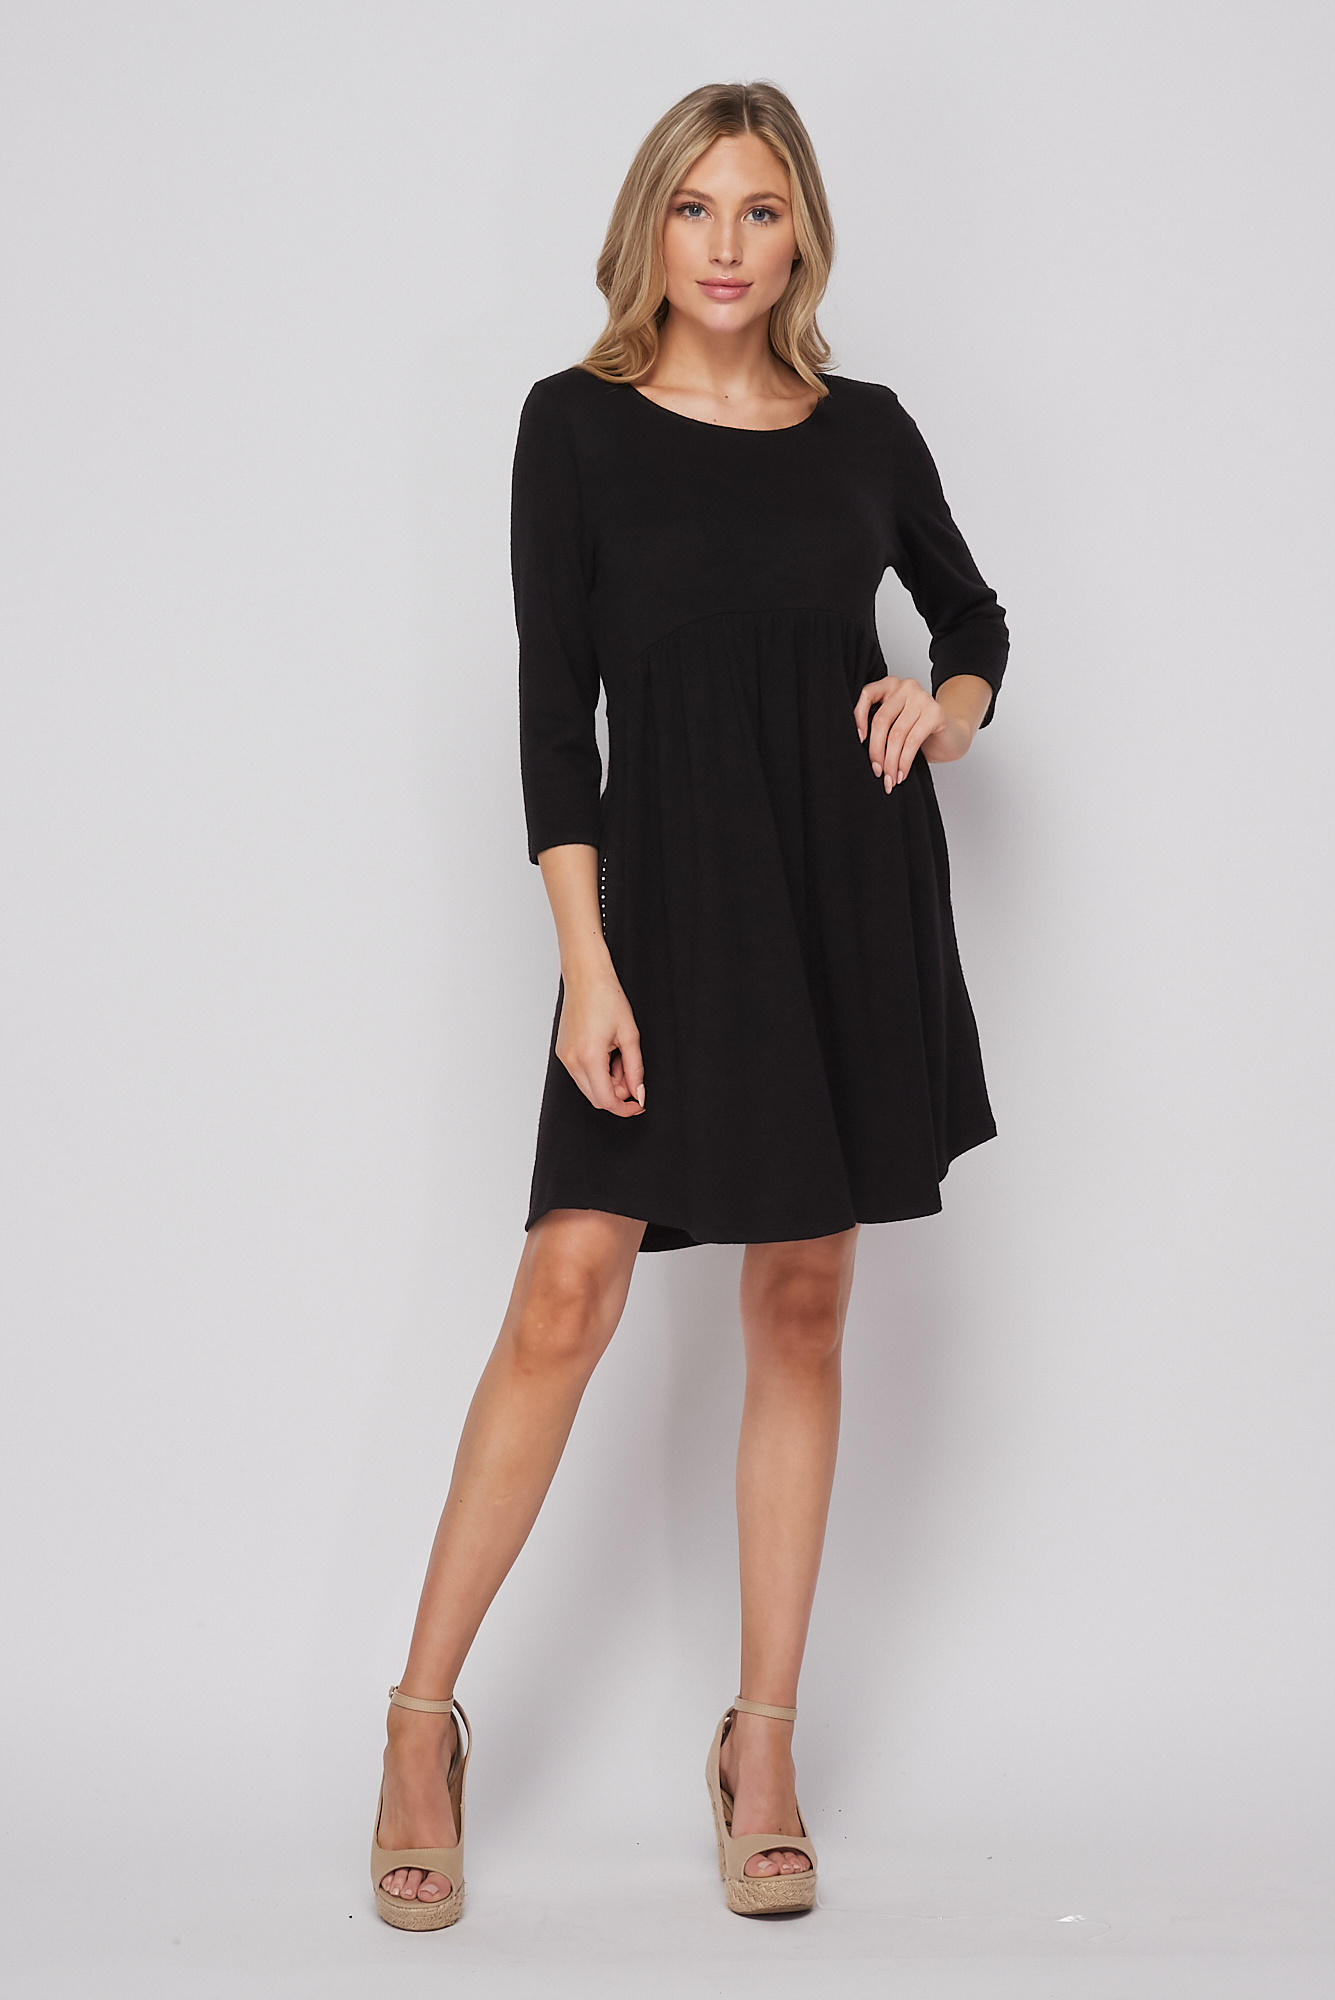 Honeyme Solid Dress With Pockets